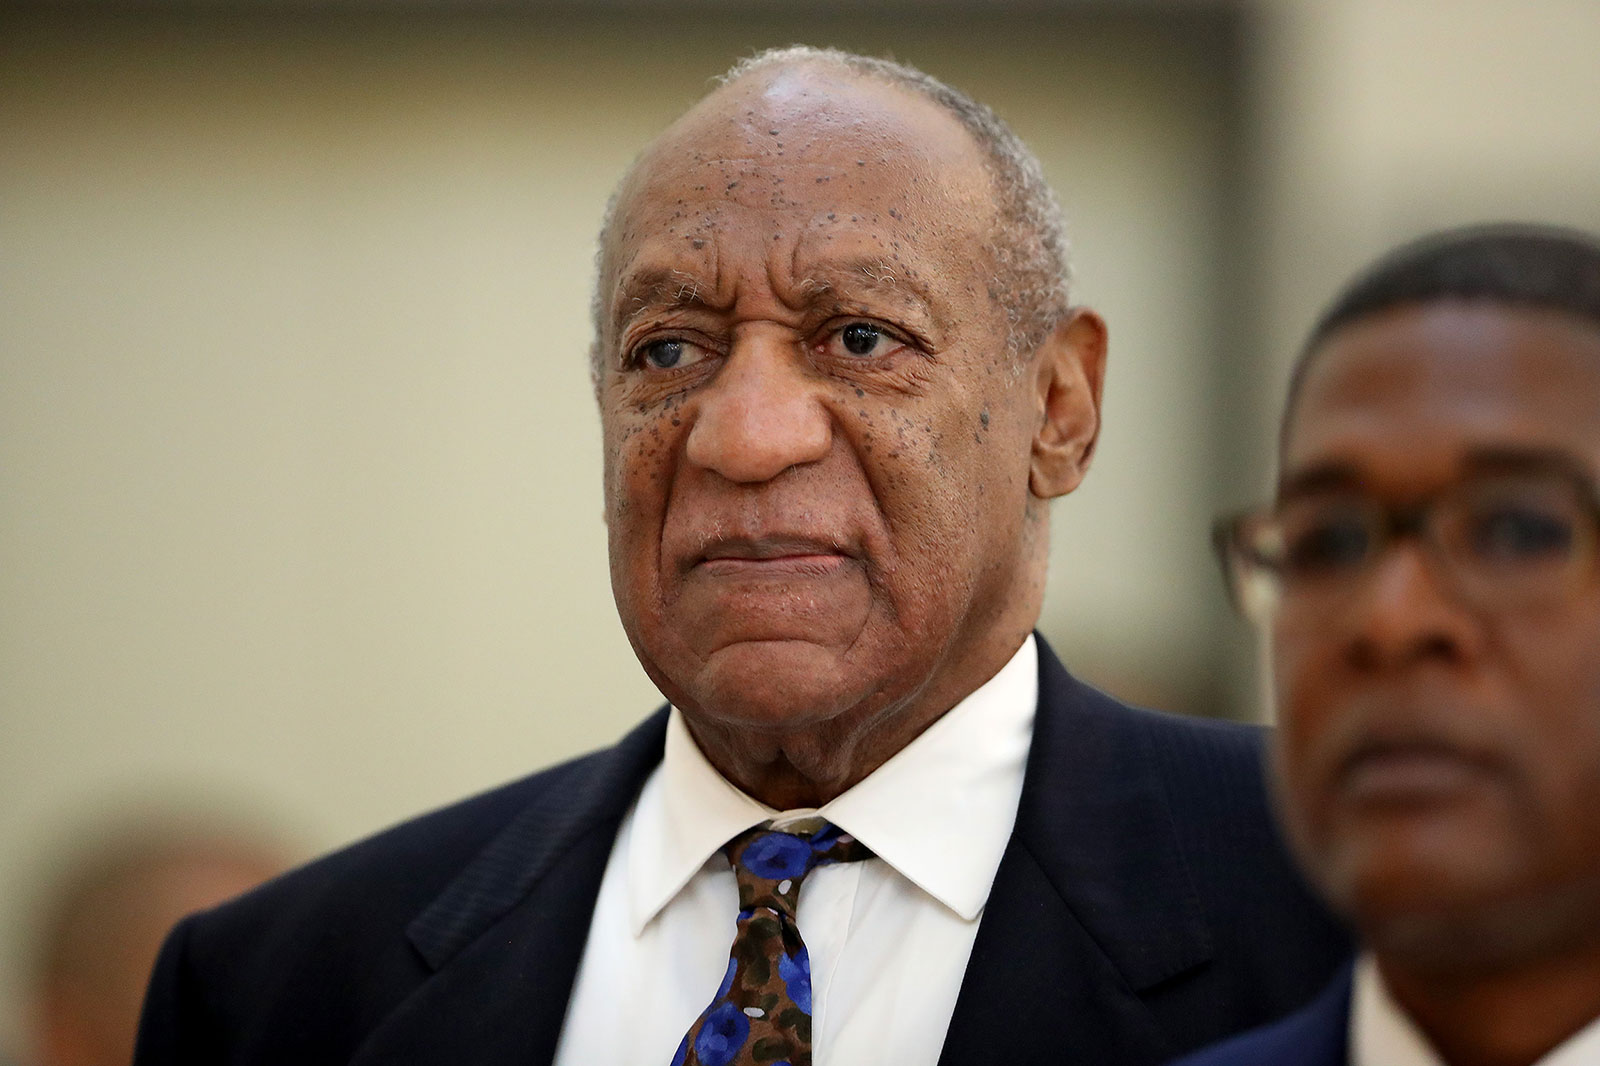 Bill Cosby at Montgomery County Courthouse in Norristown, Pennsylvania, in 2018.